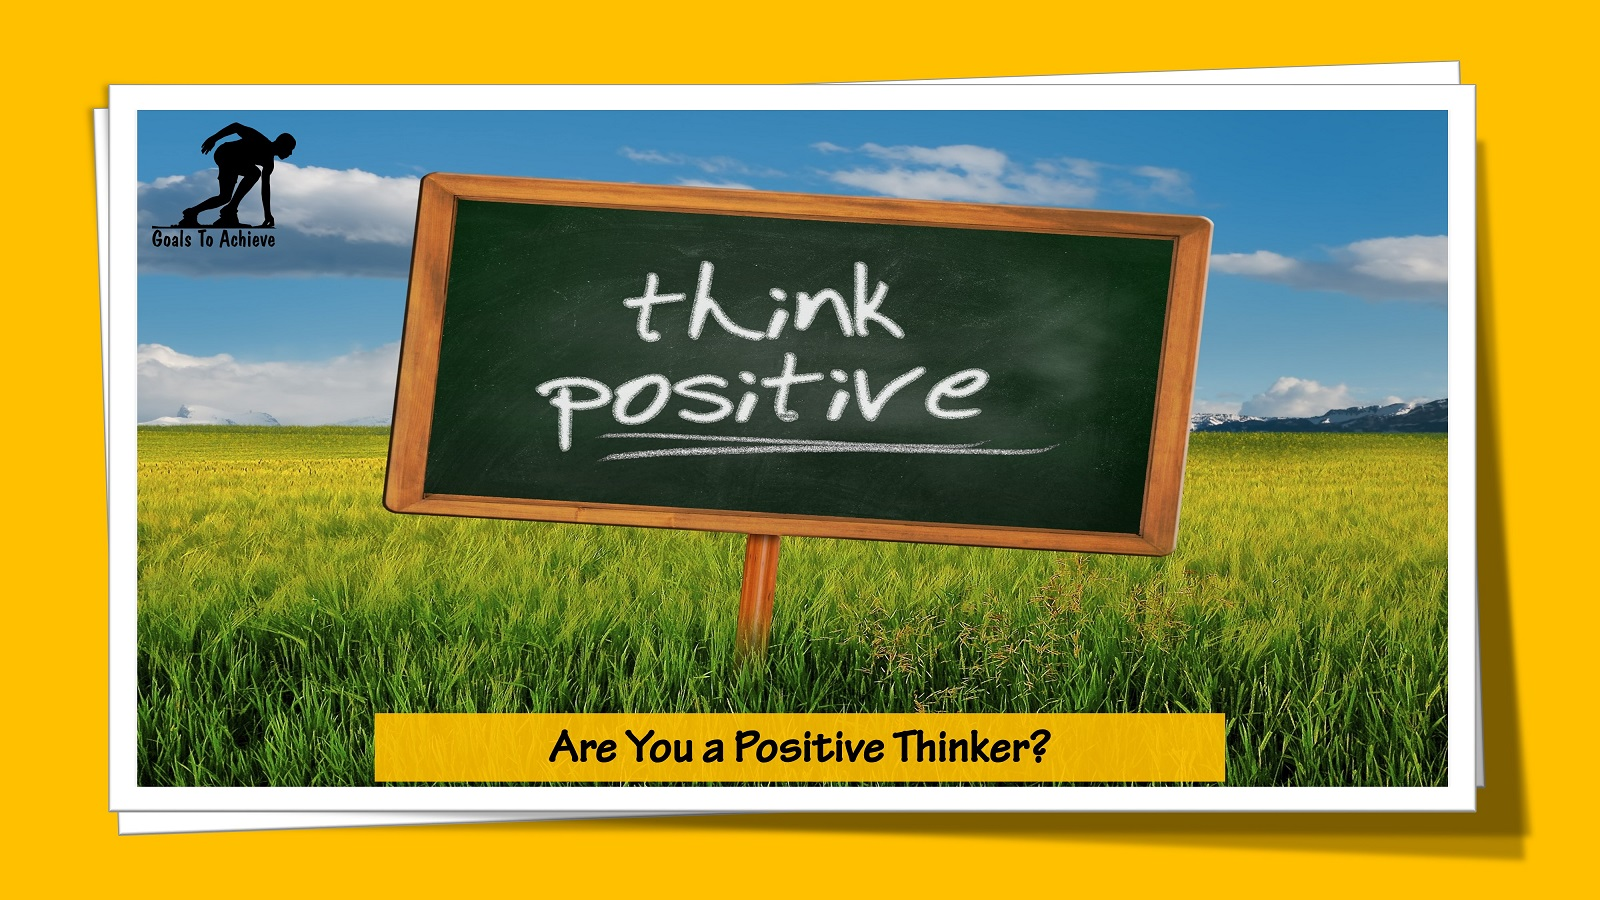 Are You a Positive Thinker?